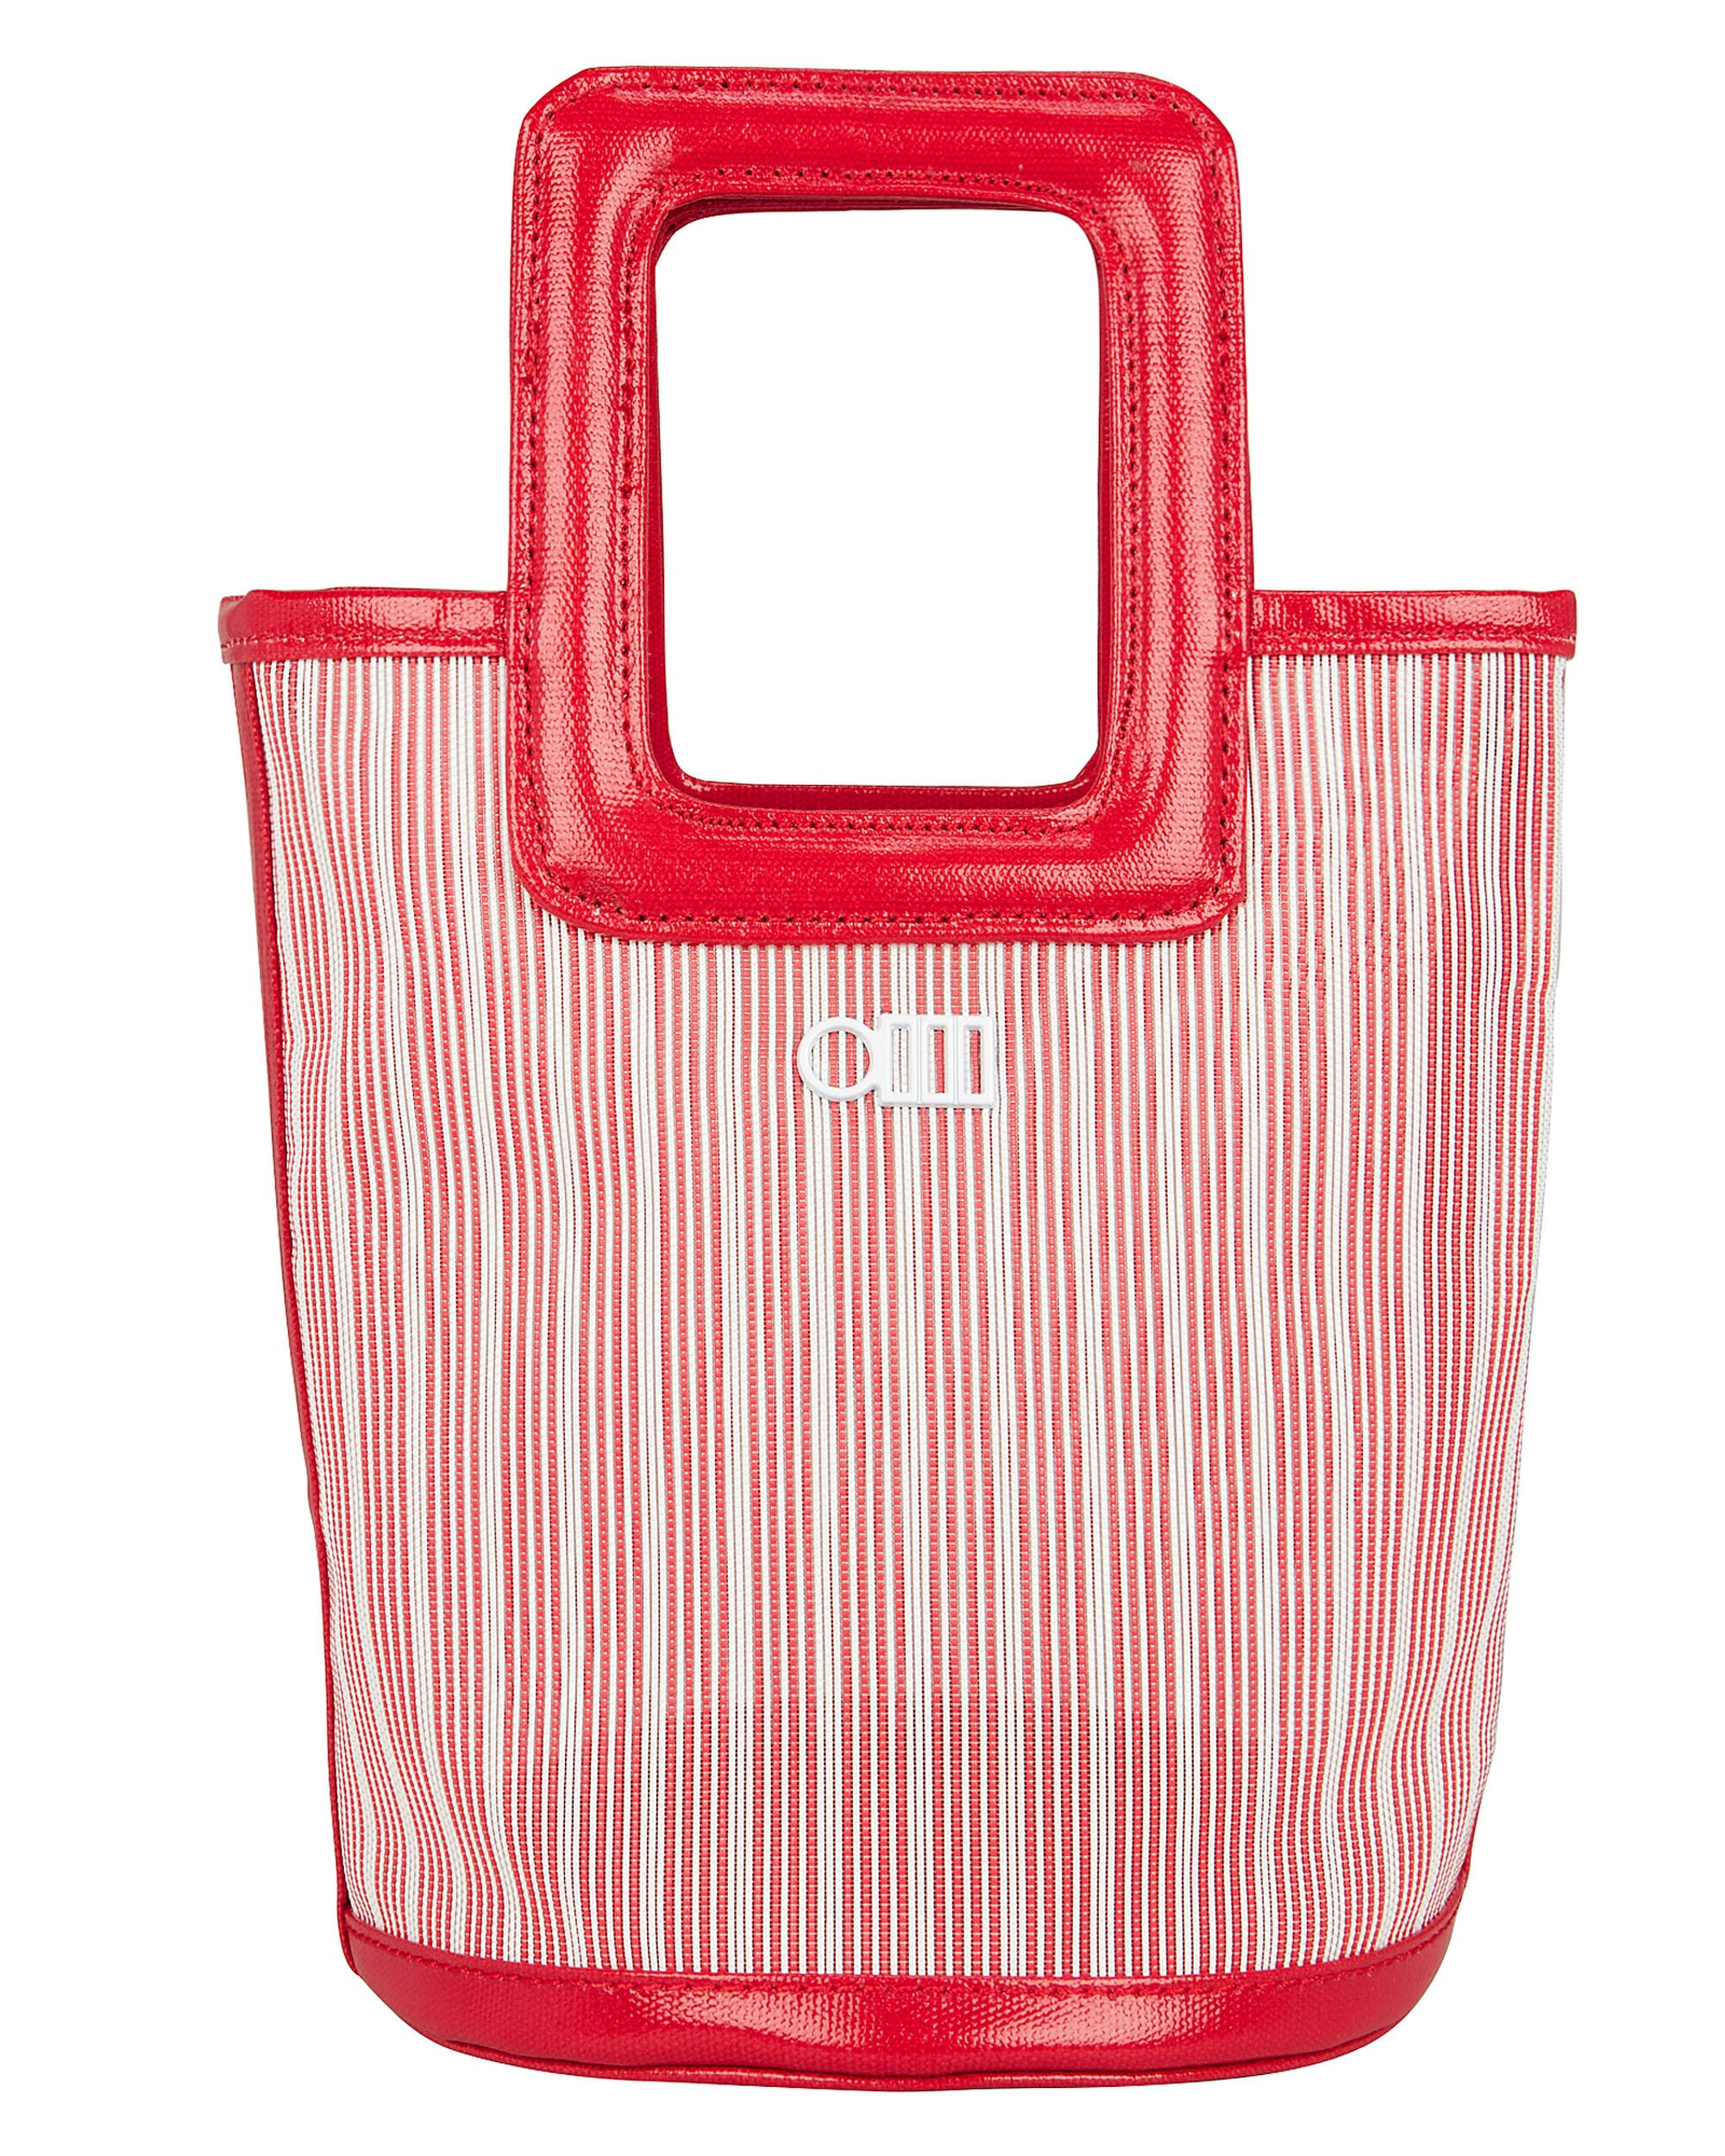 Pookie Crossbody Bag, RED/WHITE, hi-res